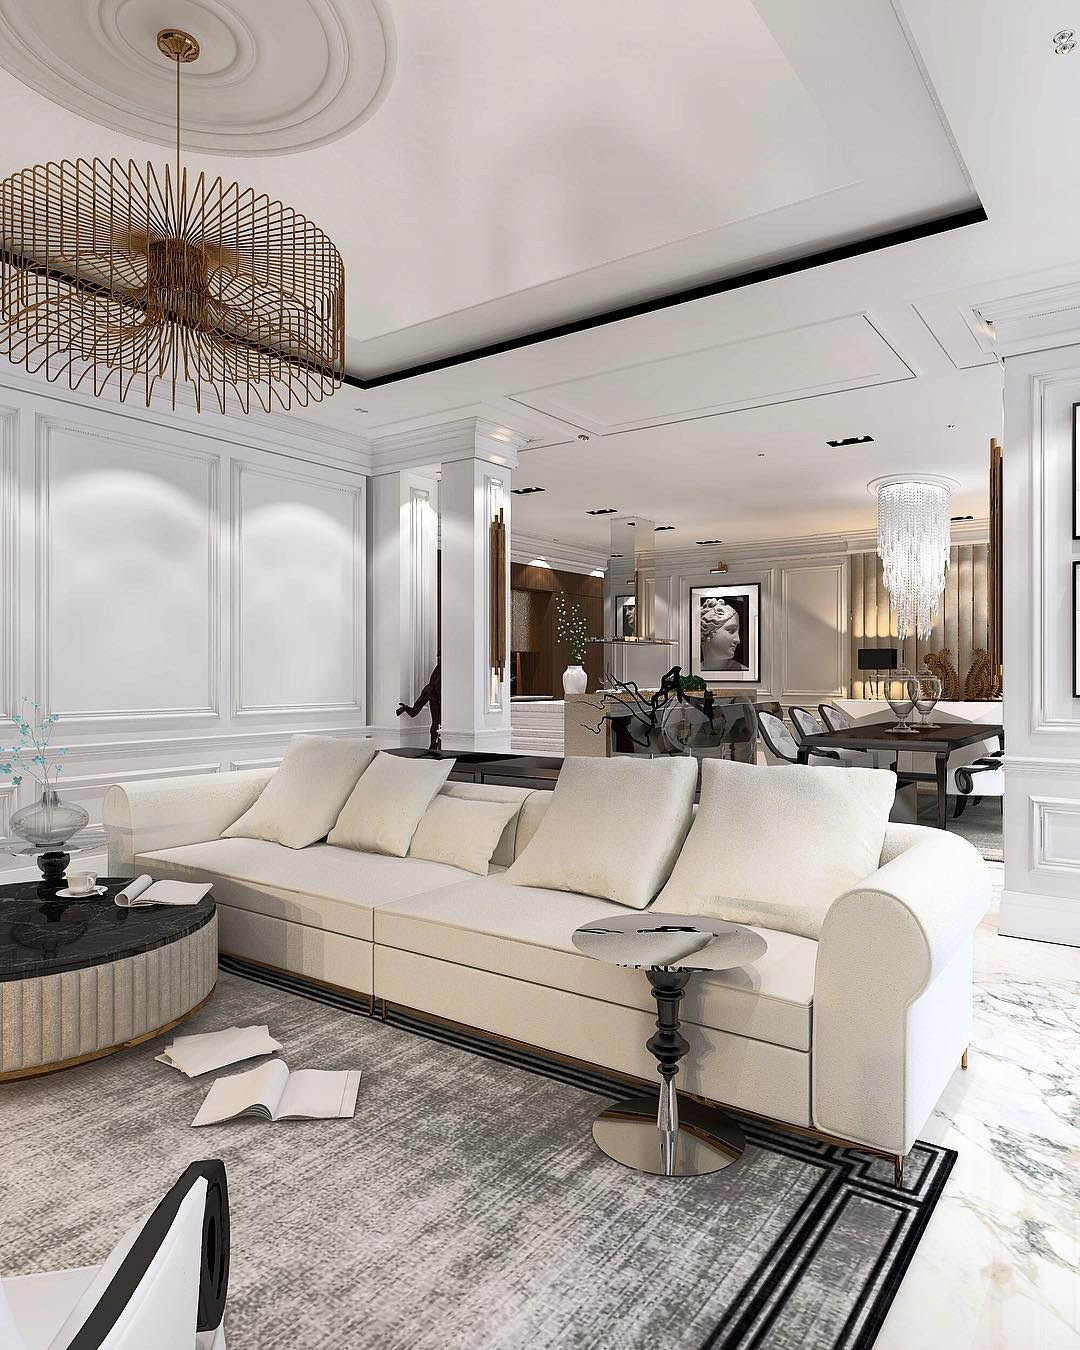 Glamorous living room ideas constantin frolov interior design